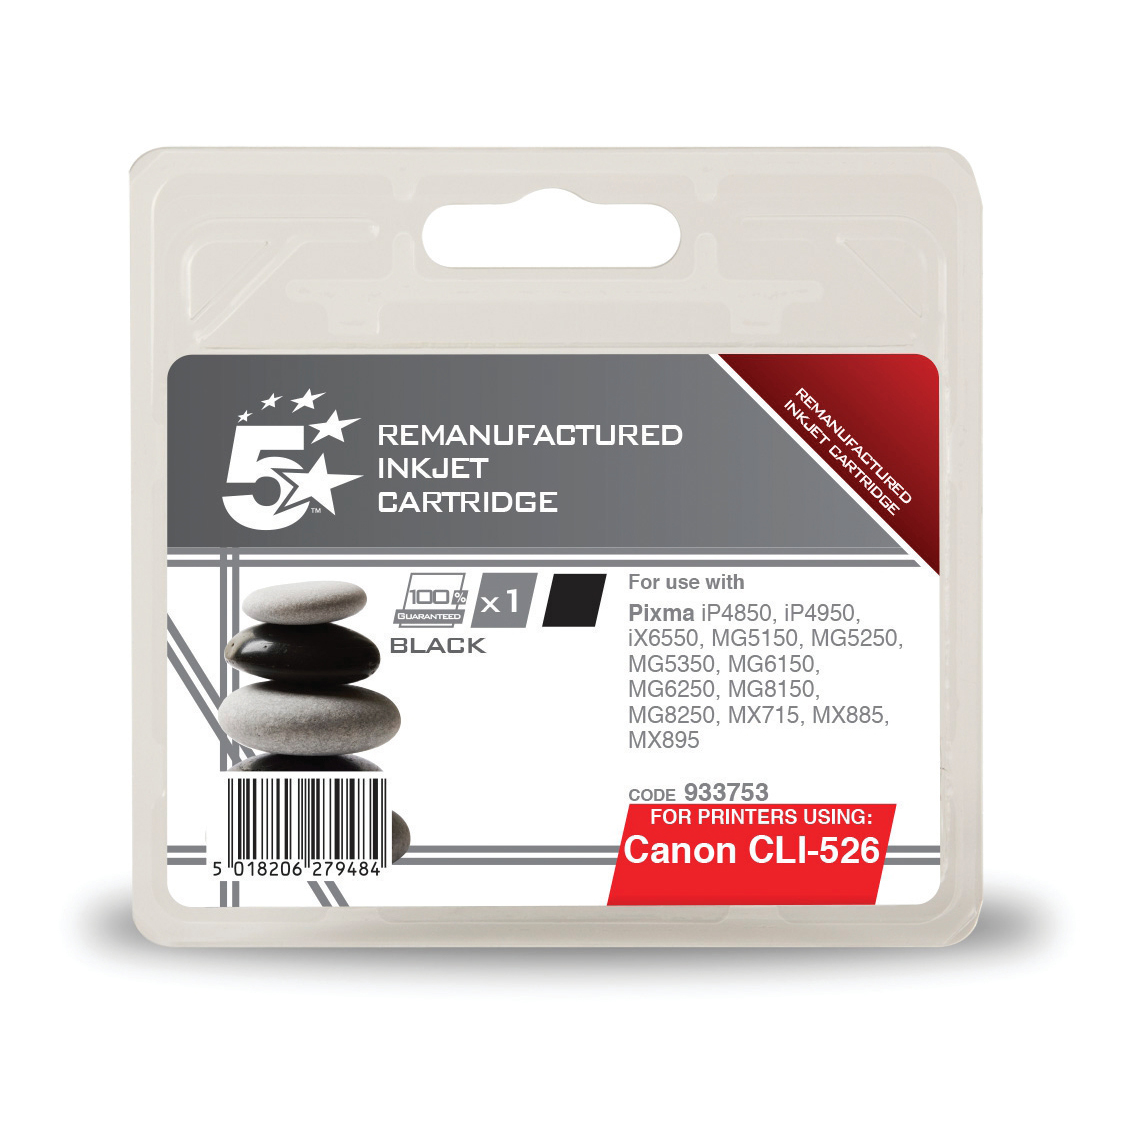 Printheads 5 Star Office Remanufactured Inkjet Cartridge Page Life 660pp 9ml Black Canon CLI-526BK Alternative